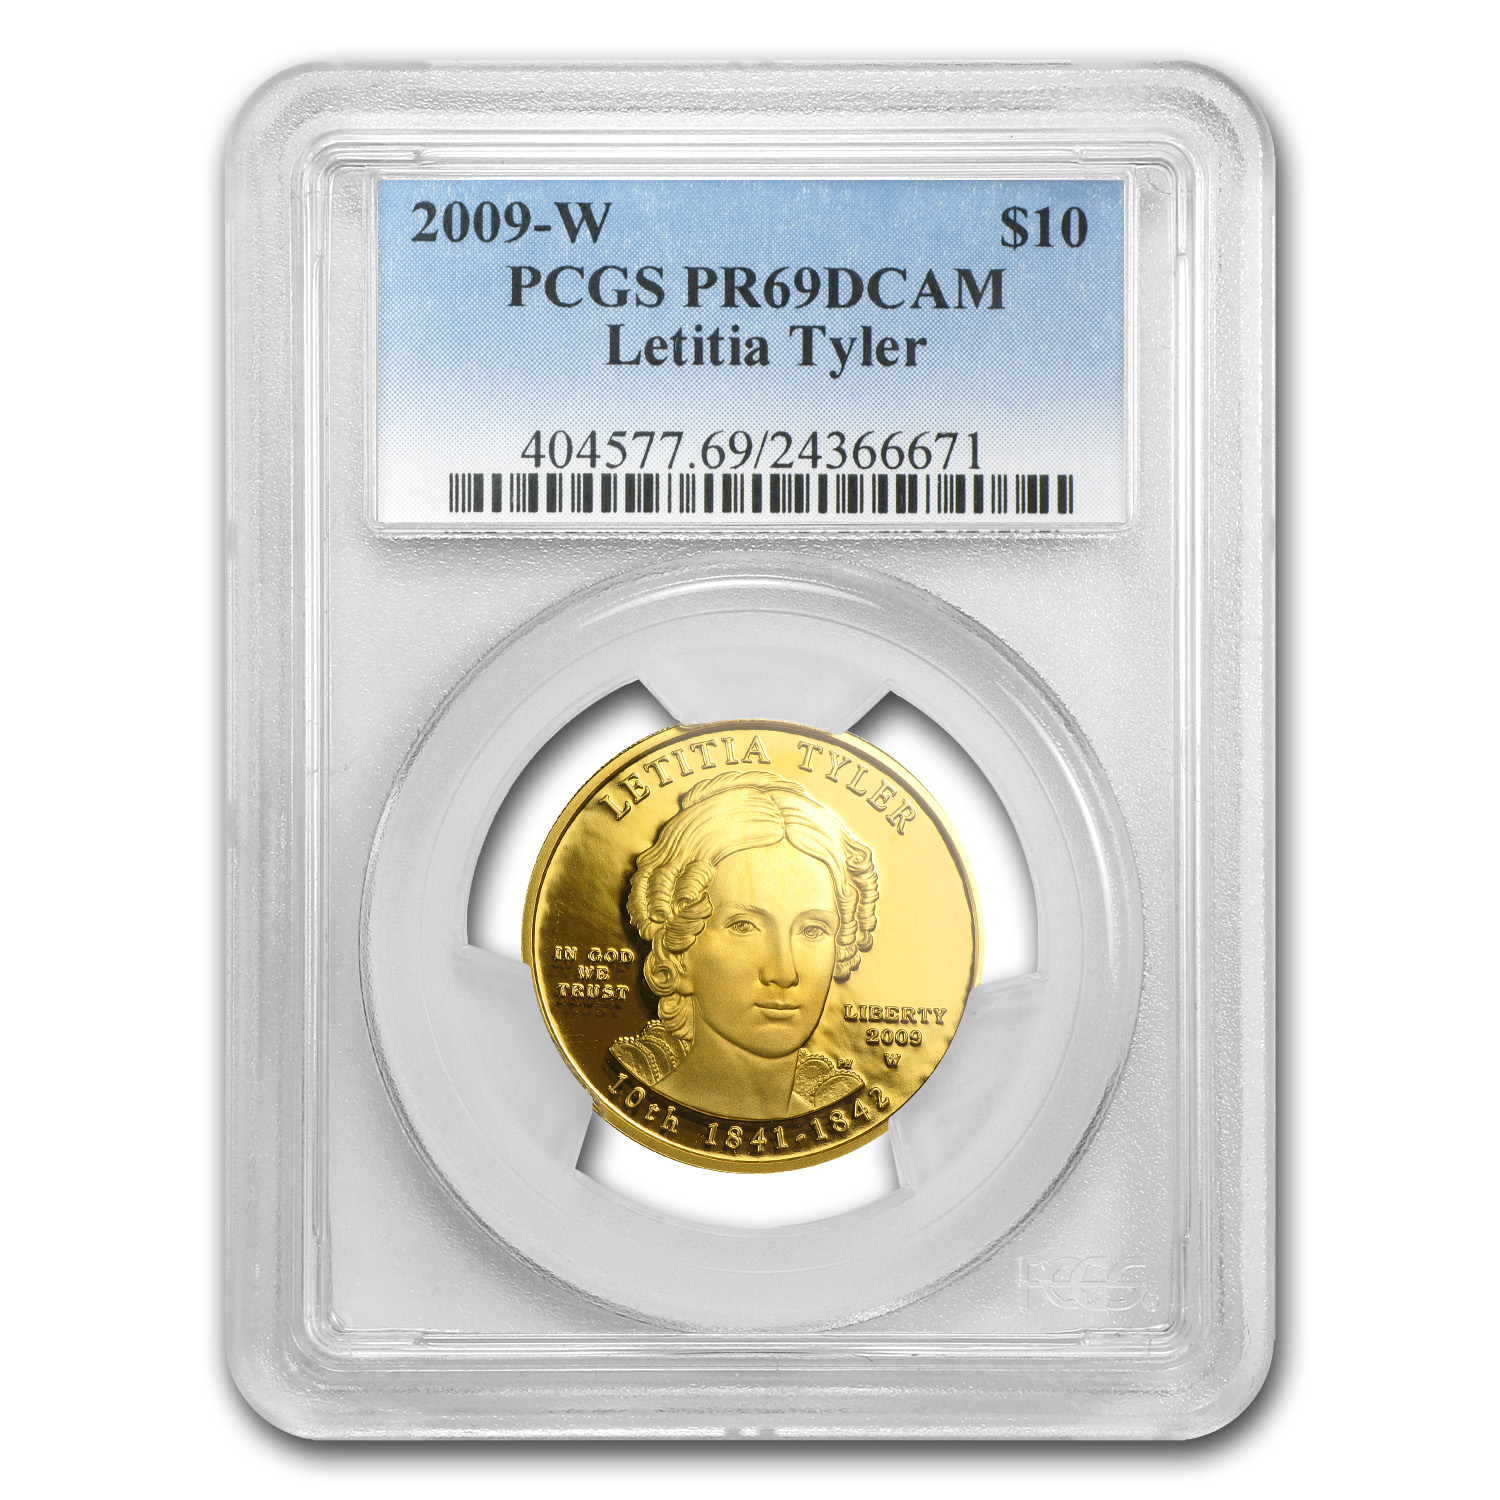 2009-W 1/2 oz Proof Gold Letitia Tyler PR-69 PCGS DCAM